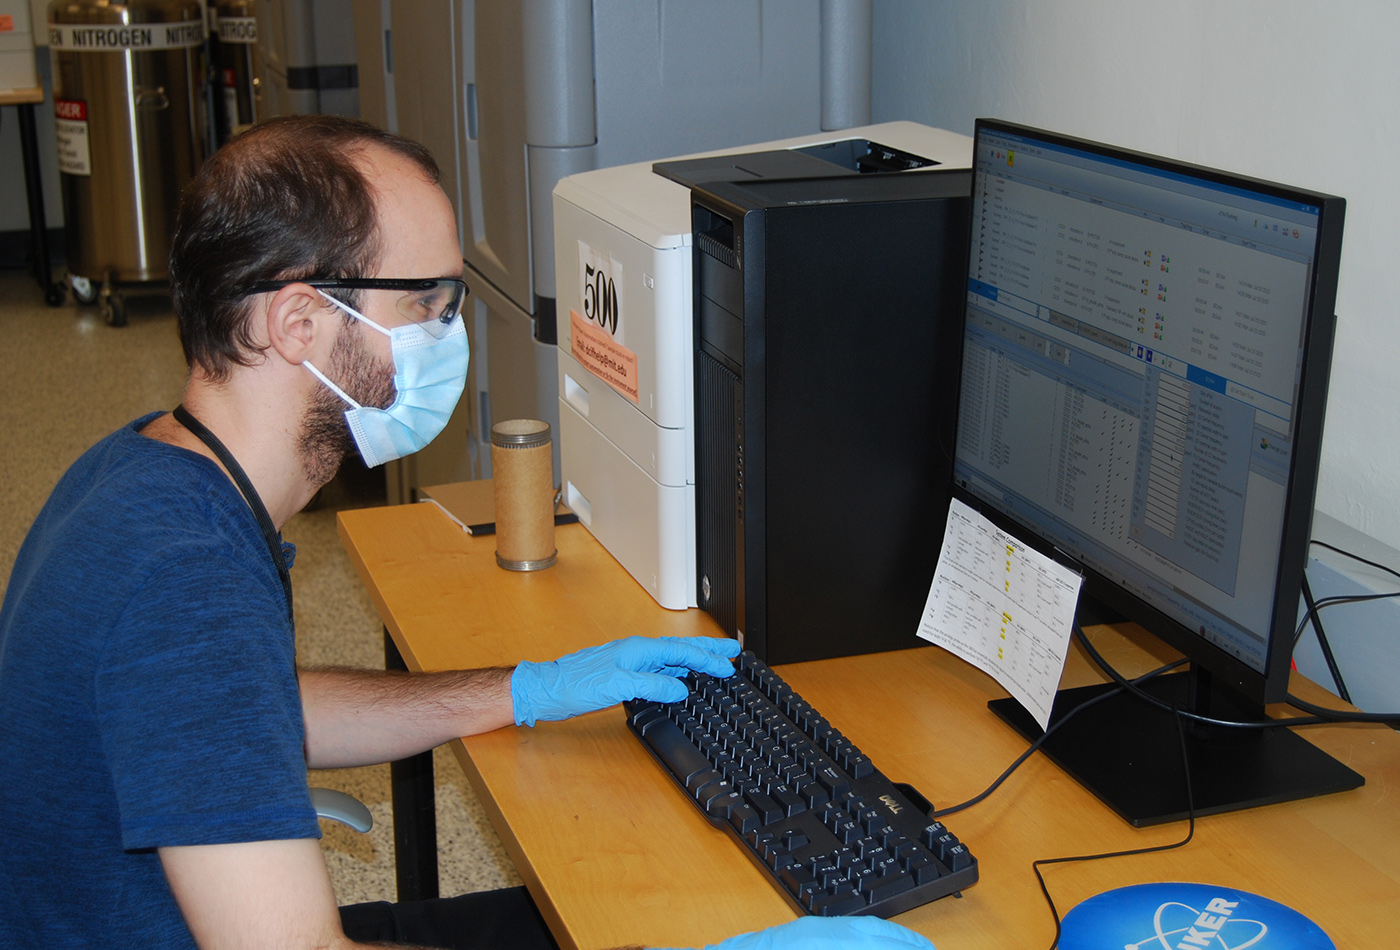 A man in gloves and a face mask works at a computer.